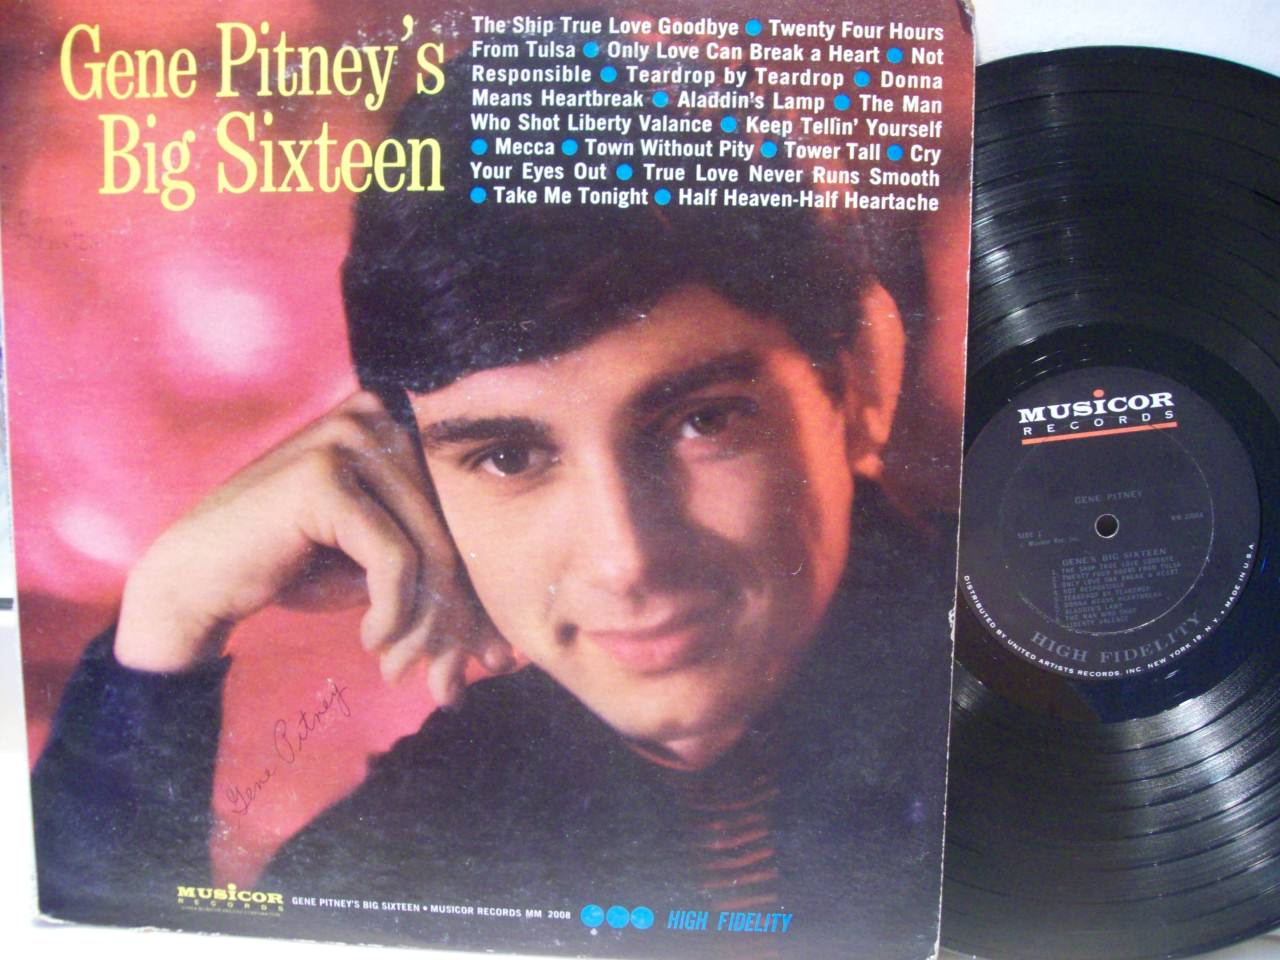 THIS IS AN AUTHENTICALLY AUTOGRAPHED LP BY GENE PITNEY.